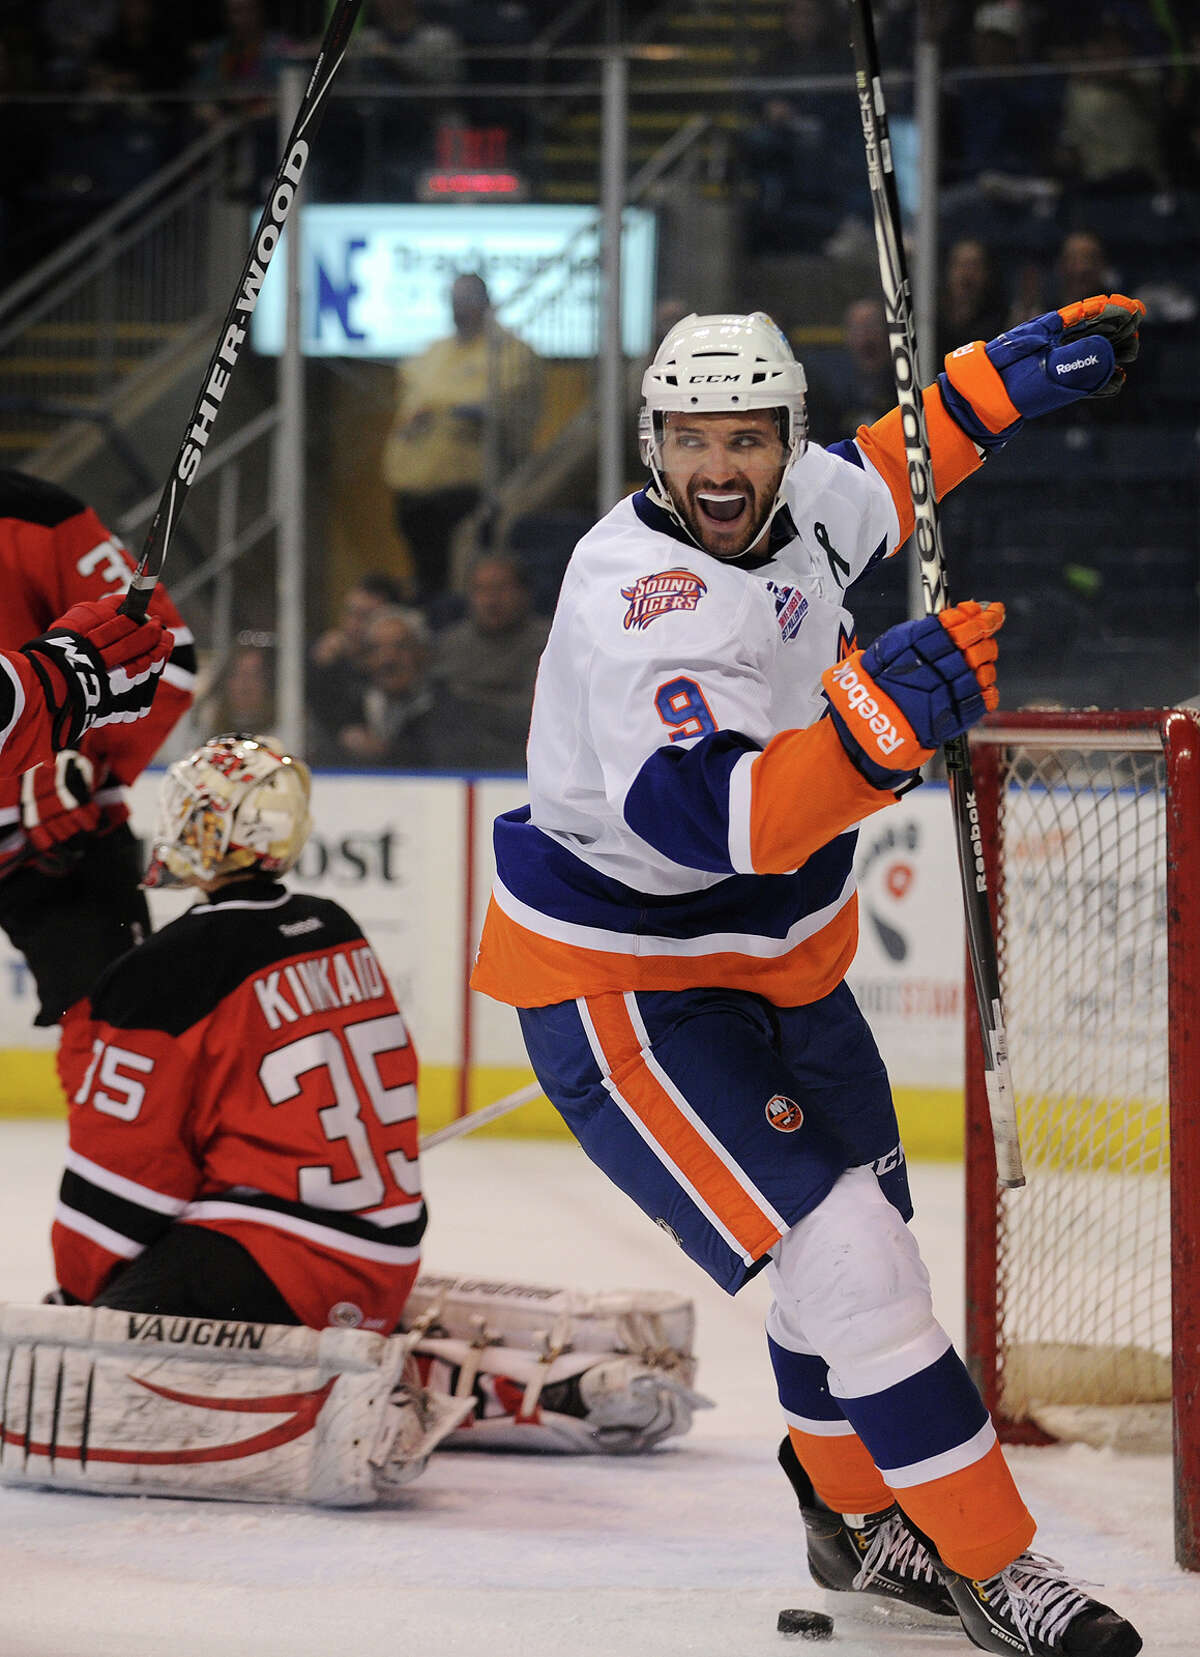 Sound Tiger Sean Wiles, left, celebrates teammate Jordan Hill's second goal of the game during the second period of their matchup with the Albany Devils at the Webster Bank Arena in Bridgeport, Conn. on Sunday, March 24, 2013.